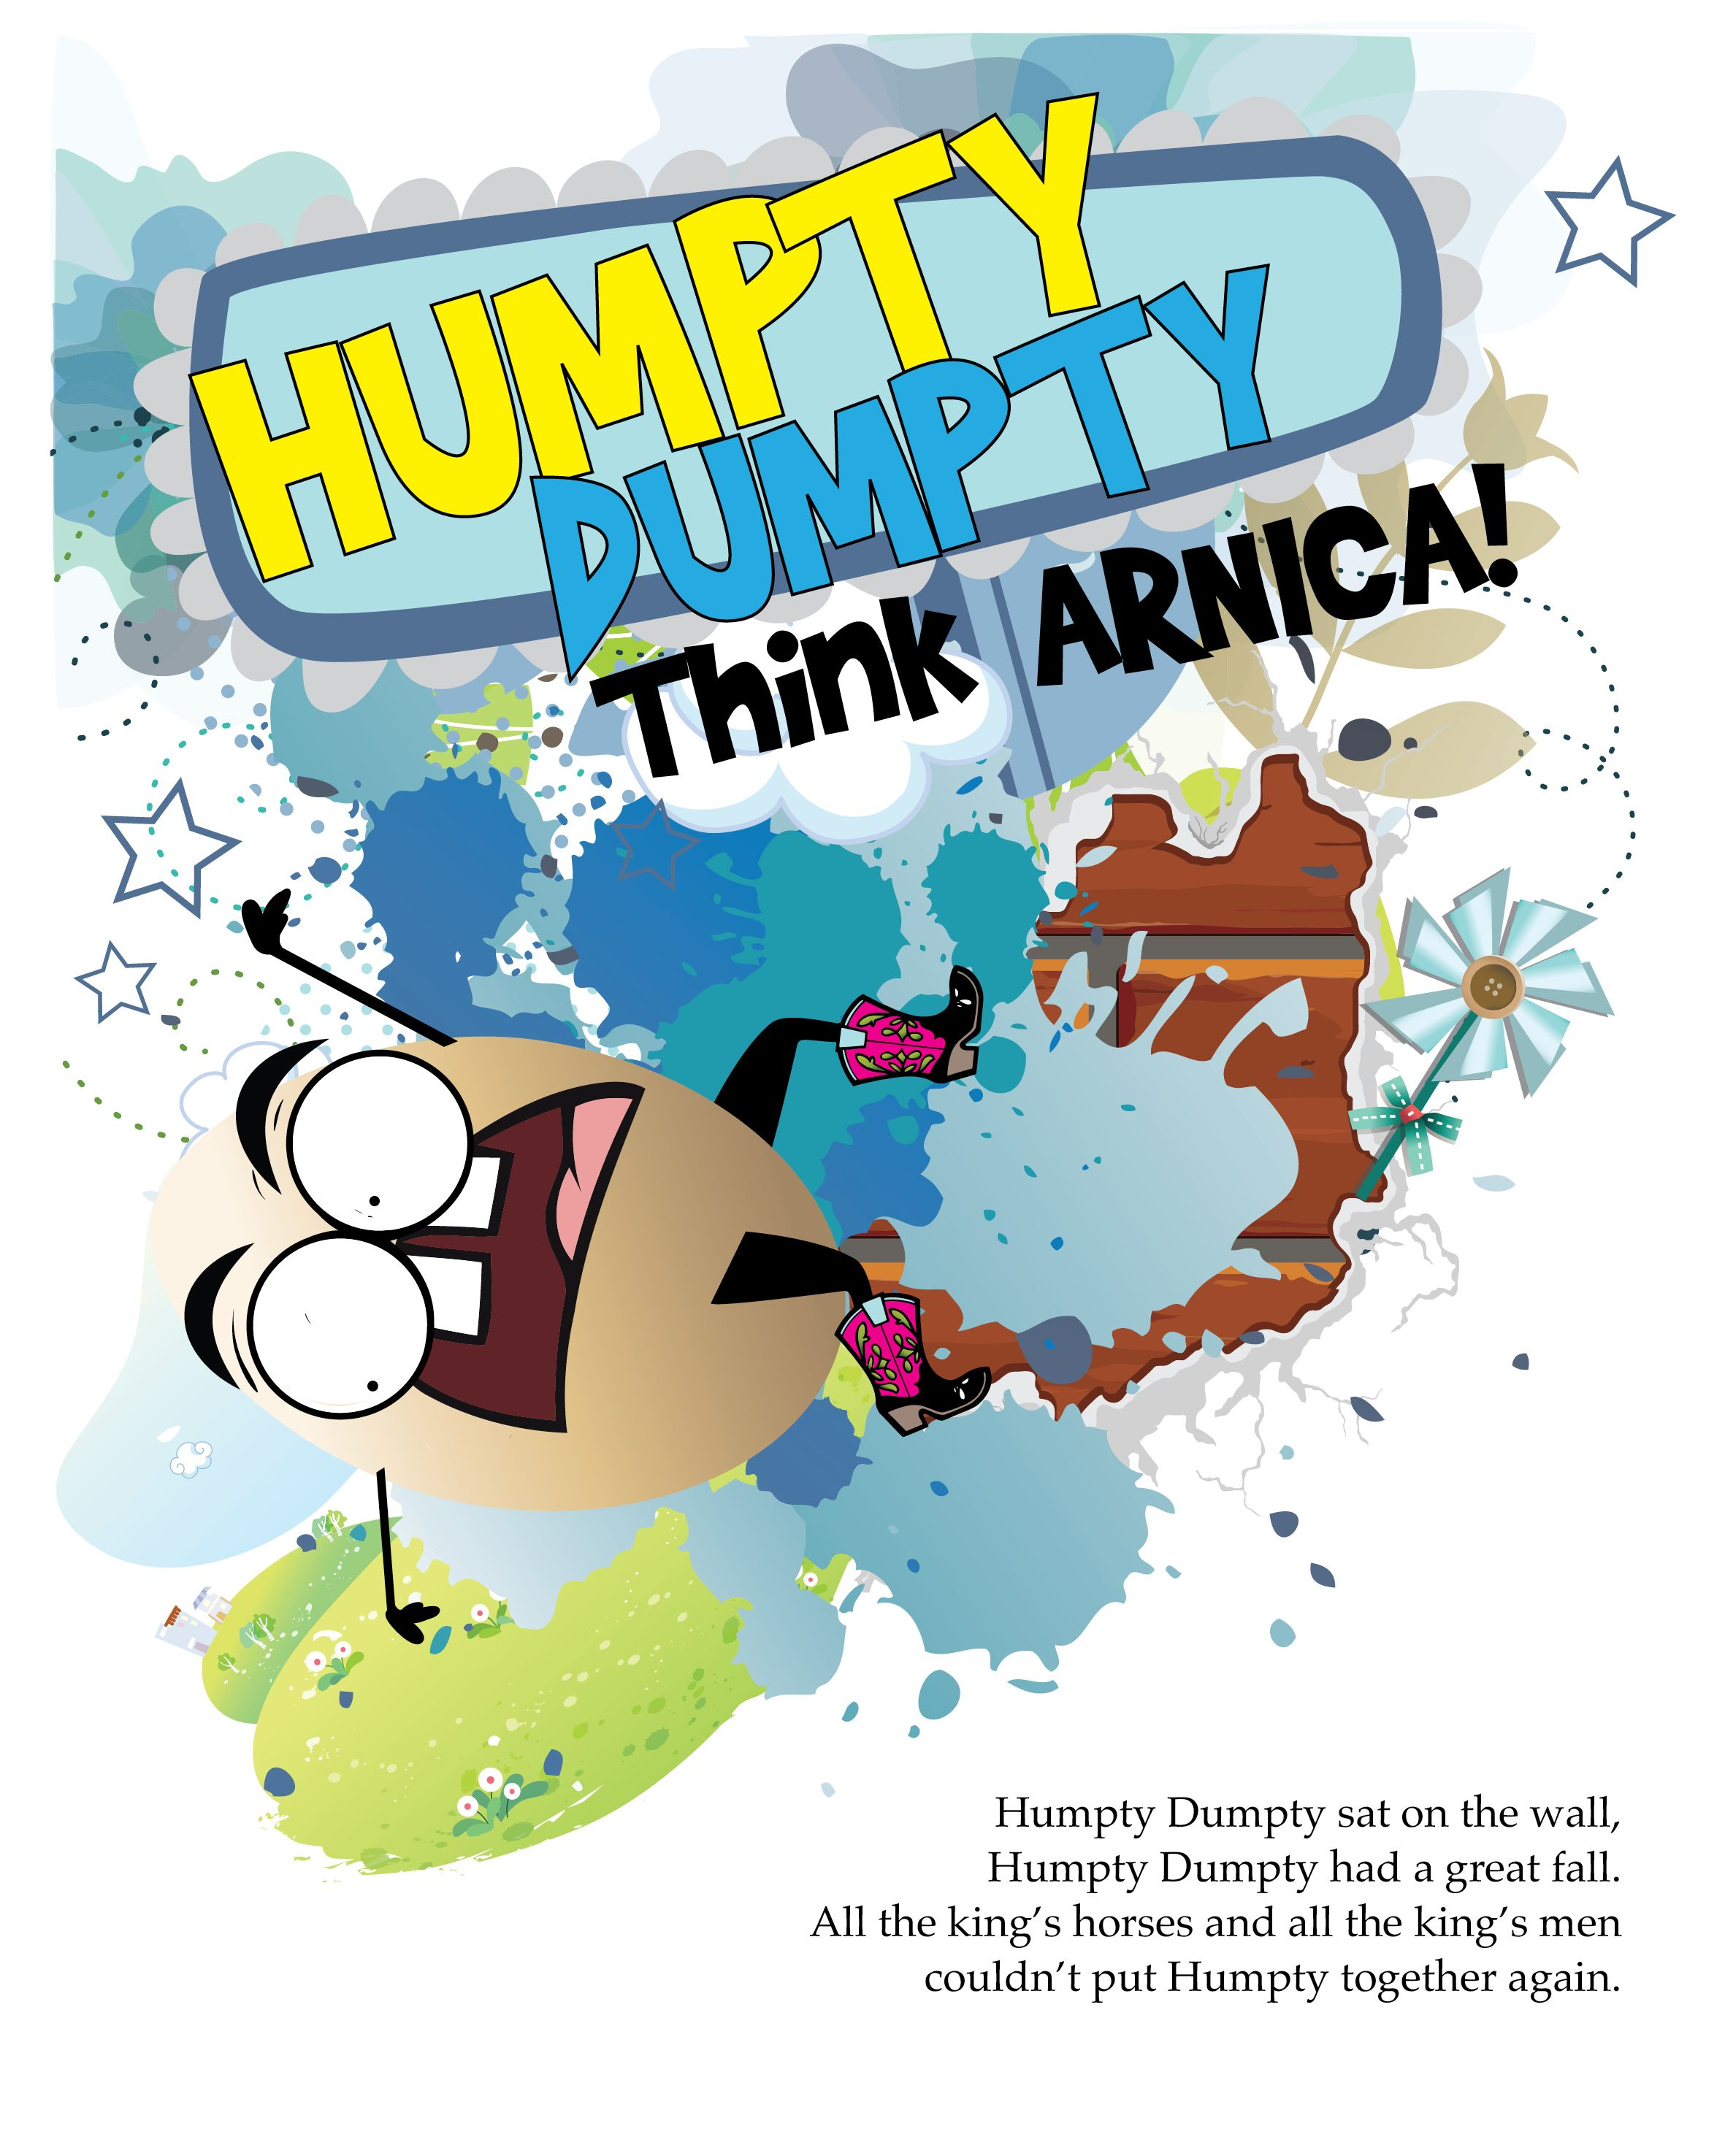 Humpty Dumpty Illustration Created For The Book Rhymes For Remedies